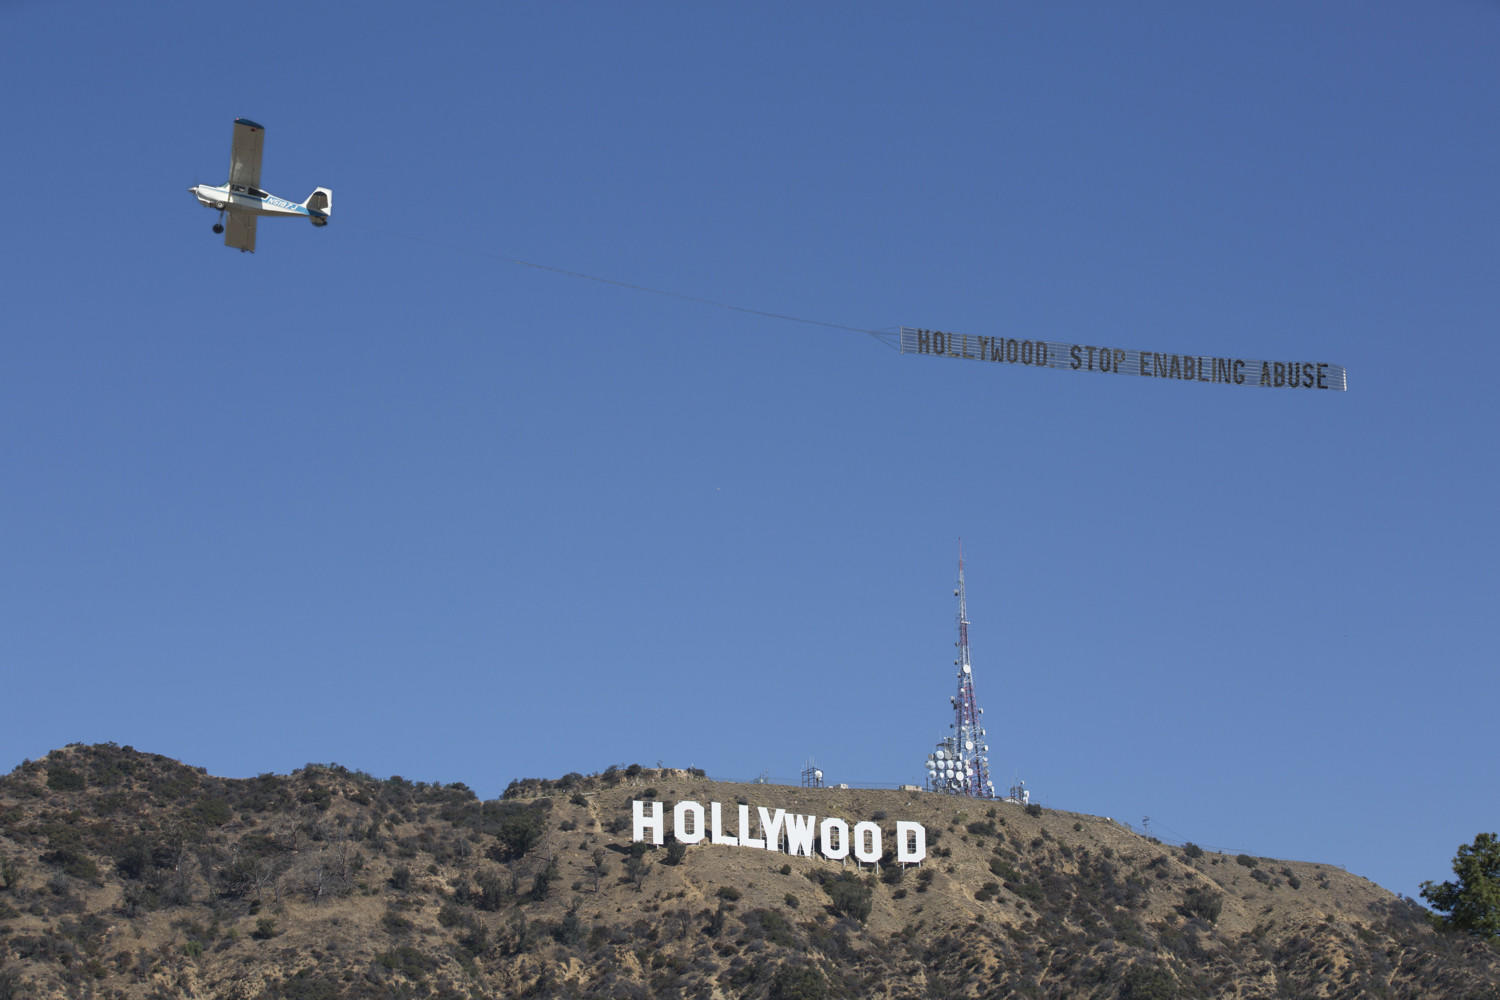 """A banner reading """"Hollywood: Stop Enabling Abuse"""" flew over the Hollywood sign on Tuesday in the wake of a slew of sexual harassment accusations against movie producer Harvey Weinstein. (Ray Ampudia / UltraViolet)"""